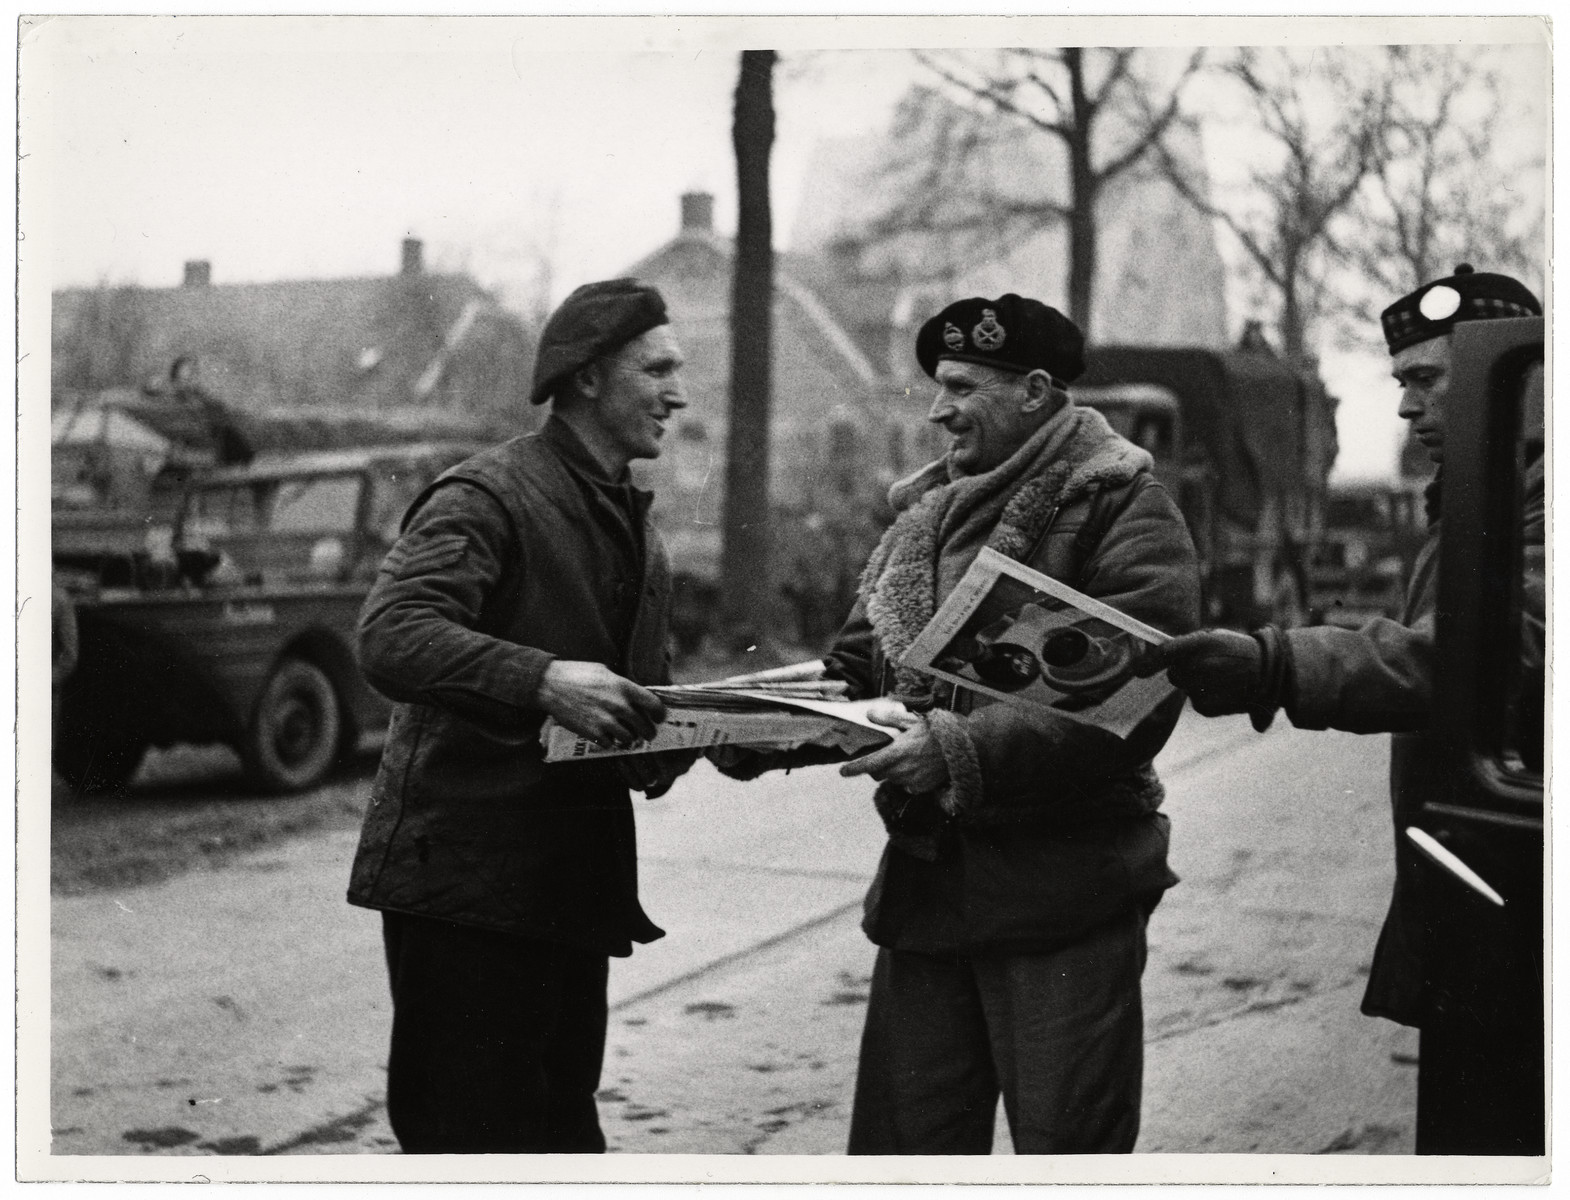 "Field Marshal Bernard Montgomery visits British troops in Germany.  Original Caption: ""Field Marshal Sir Bernard L. Montgomery has visited the British troops in the Cleve area, Germany. He arrived in a Dukw amphibious lorry. He took with him magazines, newspapers and cigarettes for the men.""  This picture shows: On his return journey, the Field Marshal stops and gives some books to Sergeant Snelling (s outhall) R.A.S.C."""